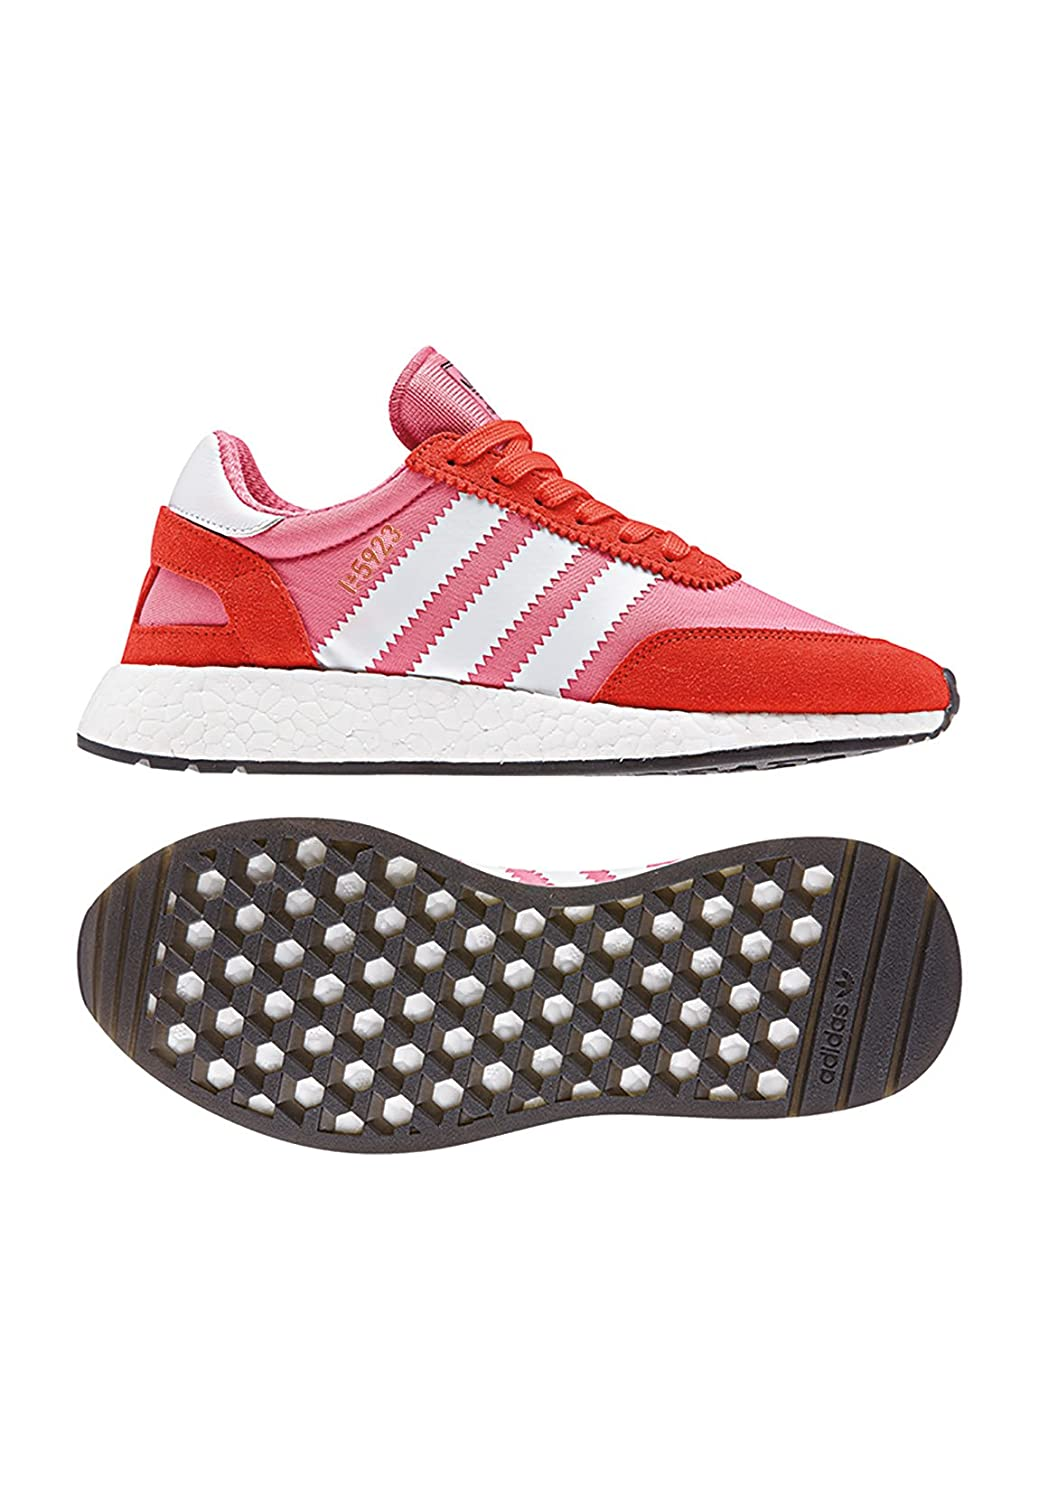 Adidas I 5923 W Chalk Pink White Bold Orange 38: ADIDAS